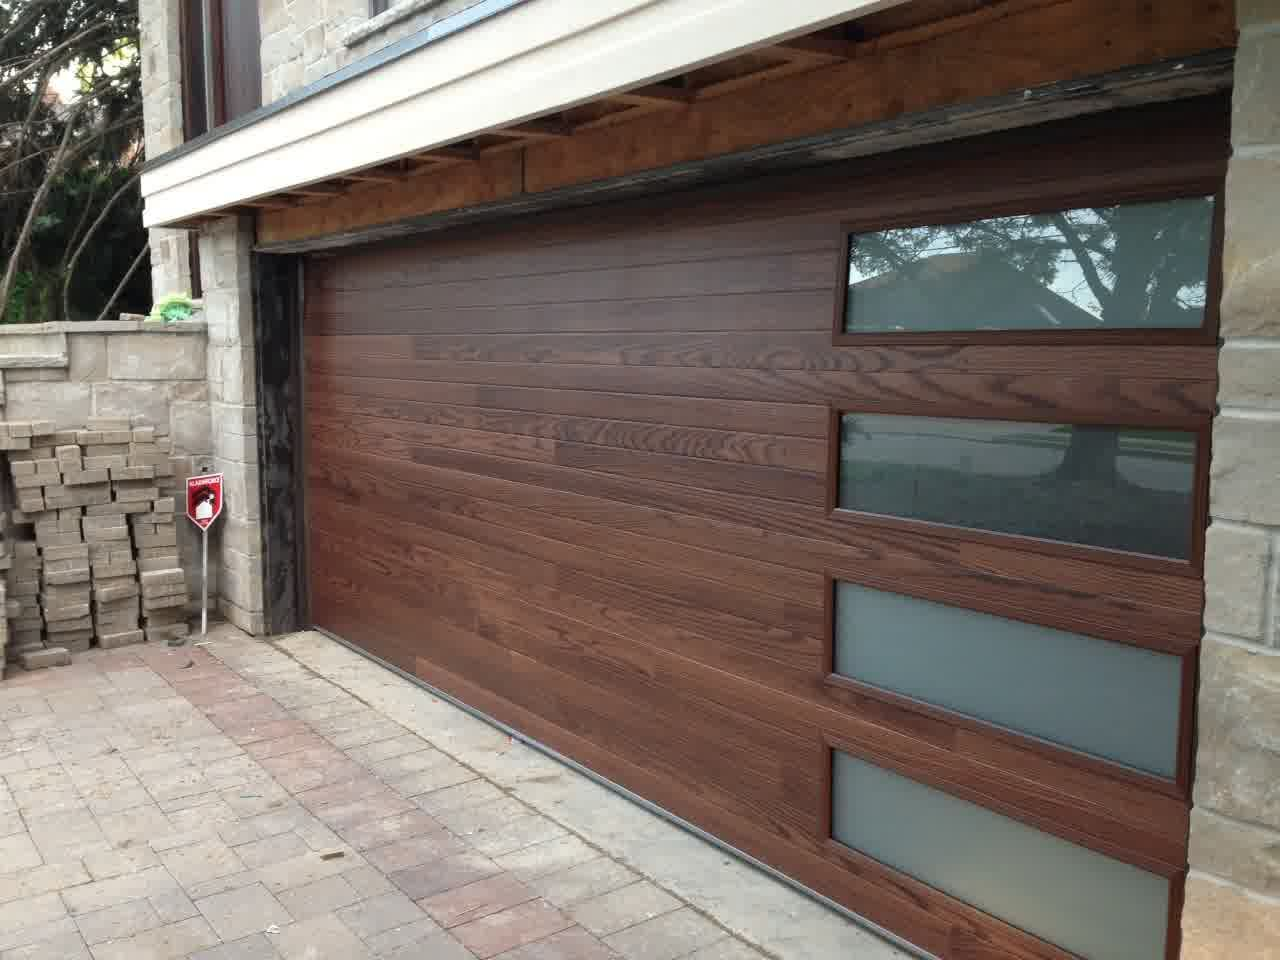 Nice mid century modern garage doors with wood and glass windows nice mid century modern garage doors with wood and glass windows plus natural brick wall and rubansaba